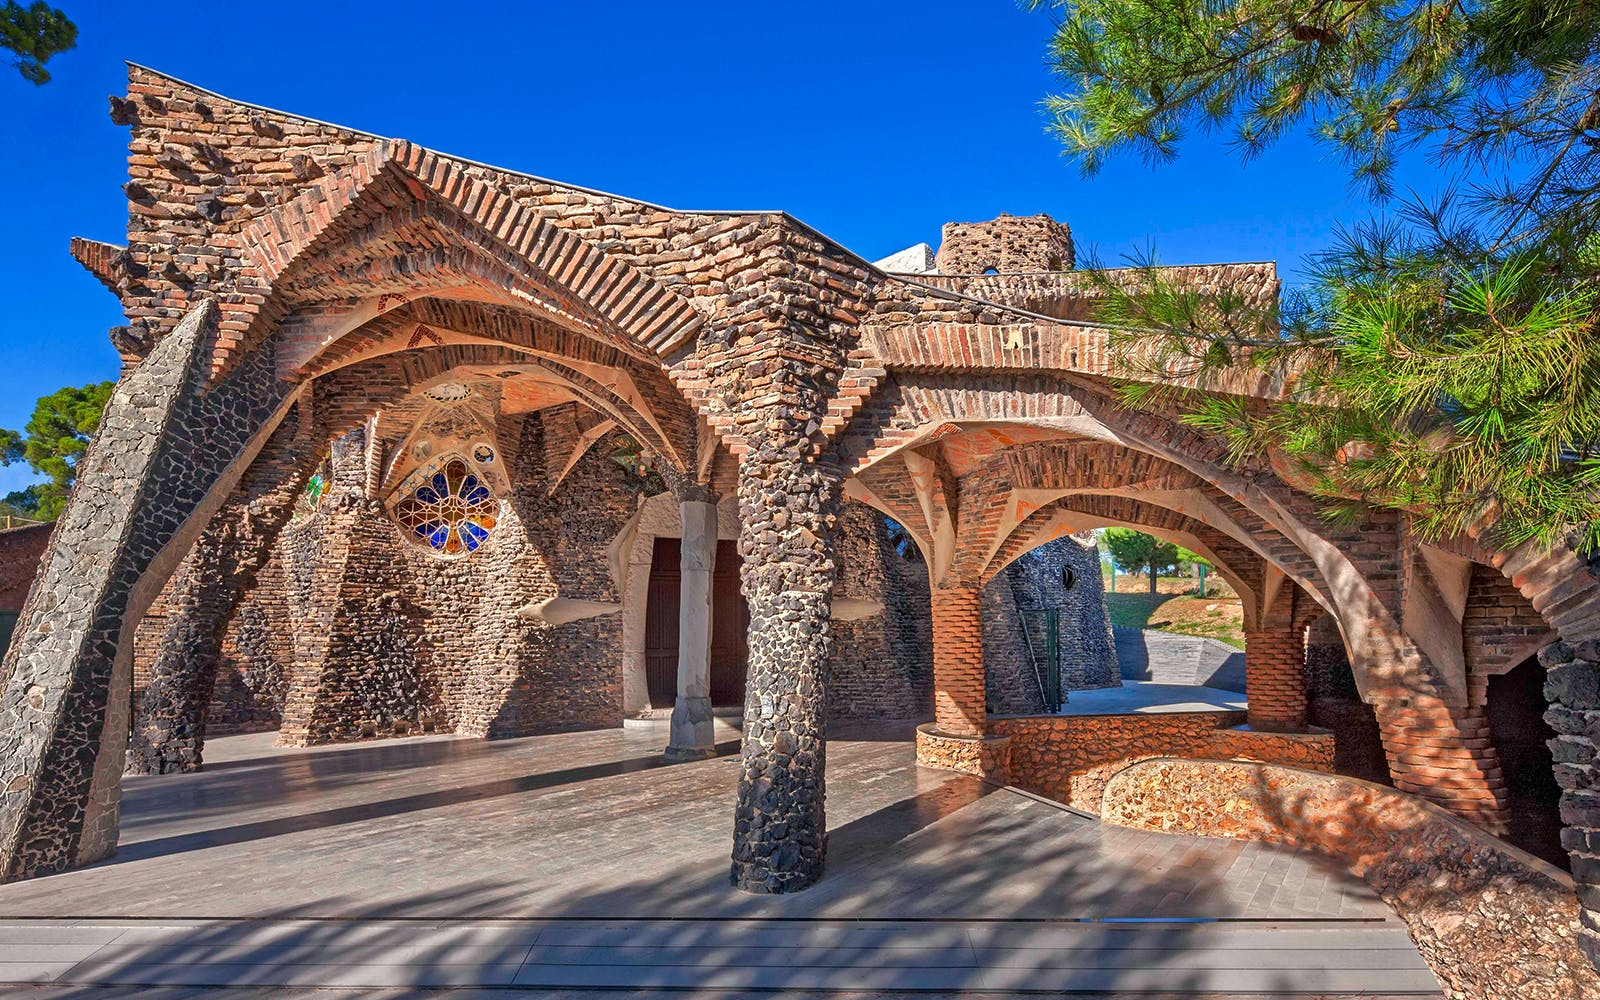 colonia guell tickets with transportation to/from barcelona-1